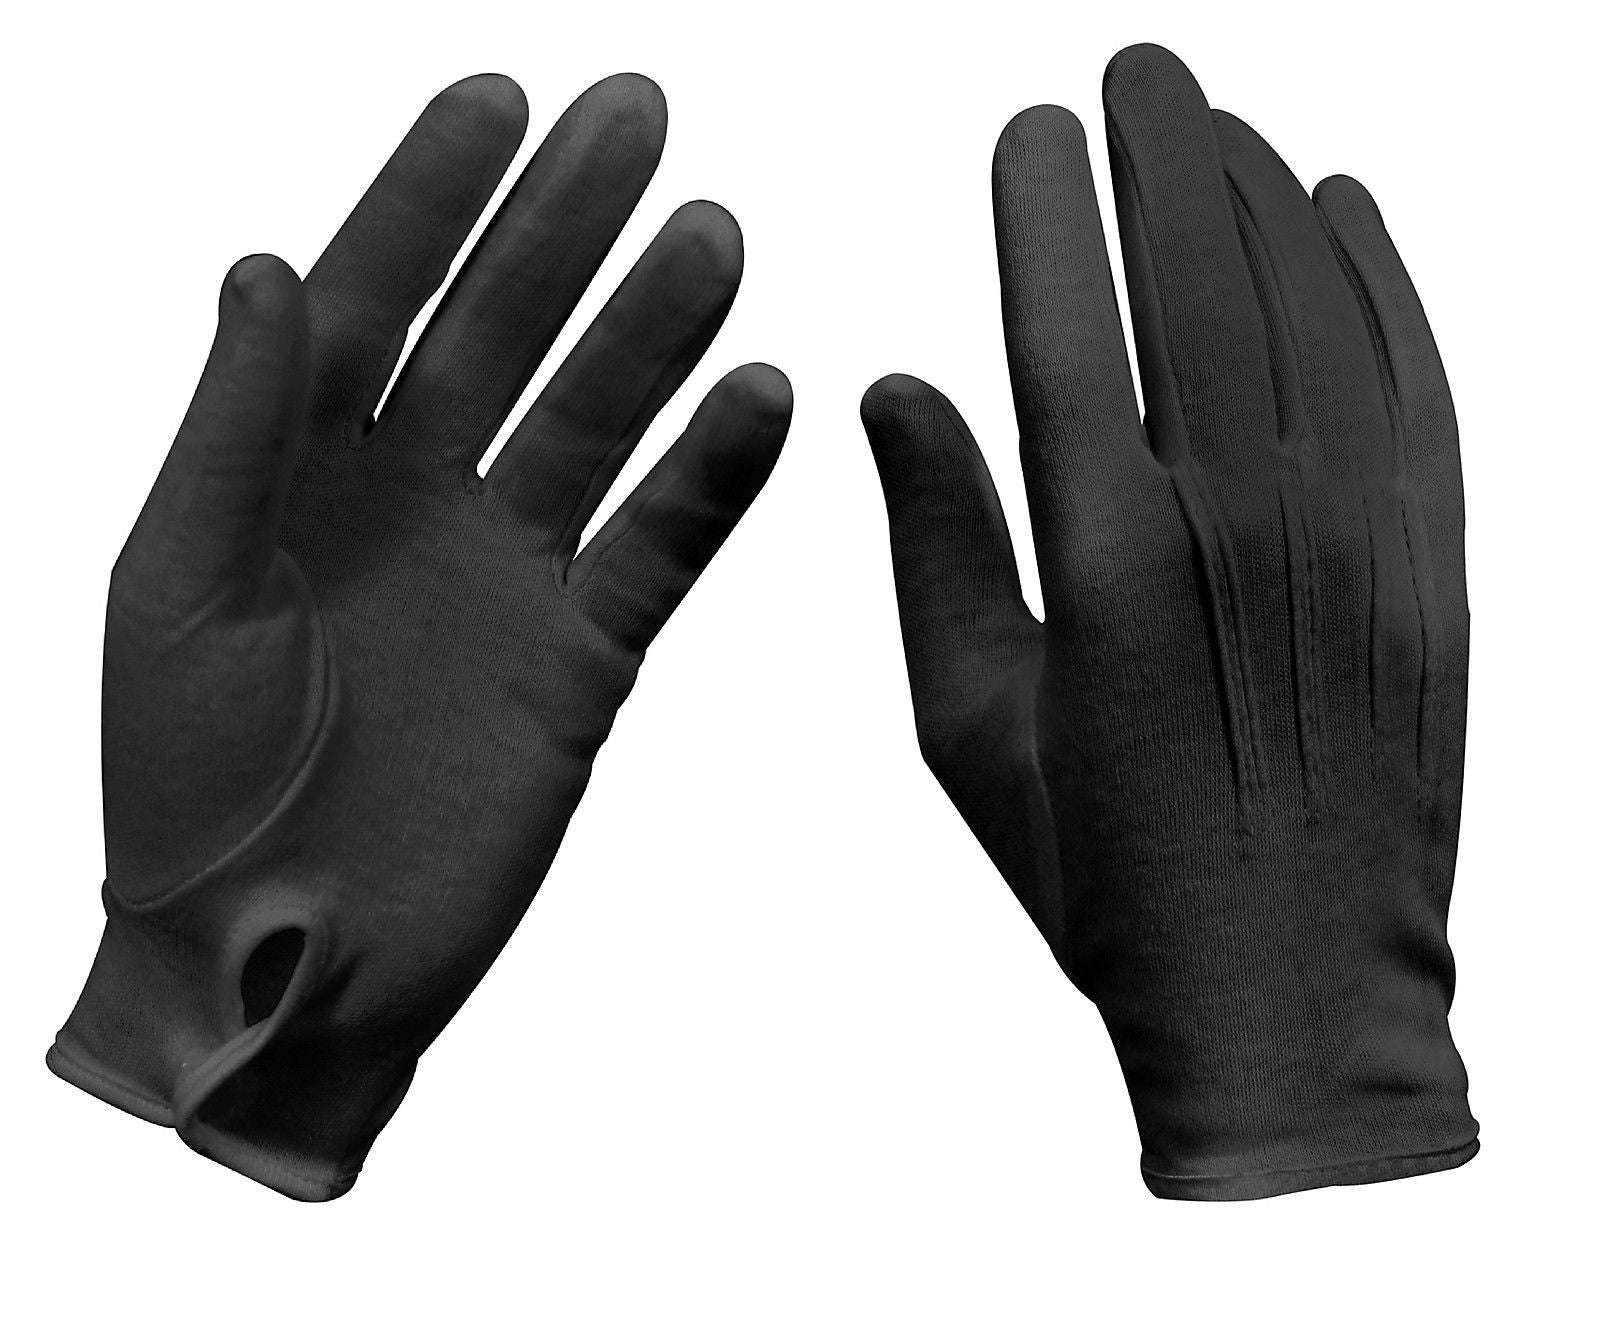 100 Cotton Black Parade Marching Band Gloves Tuxedo Waiter Formal Pants Wear